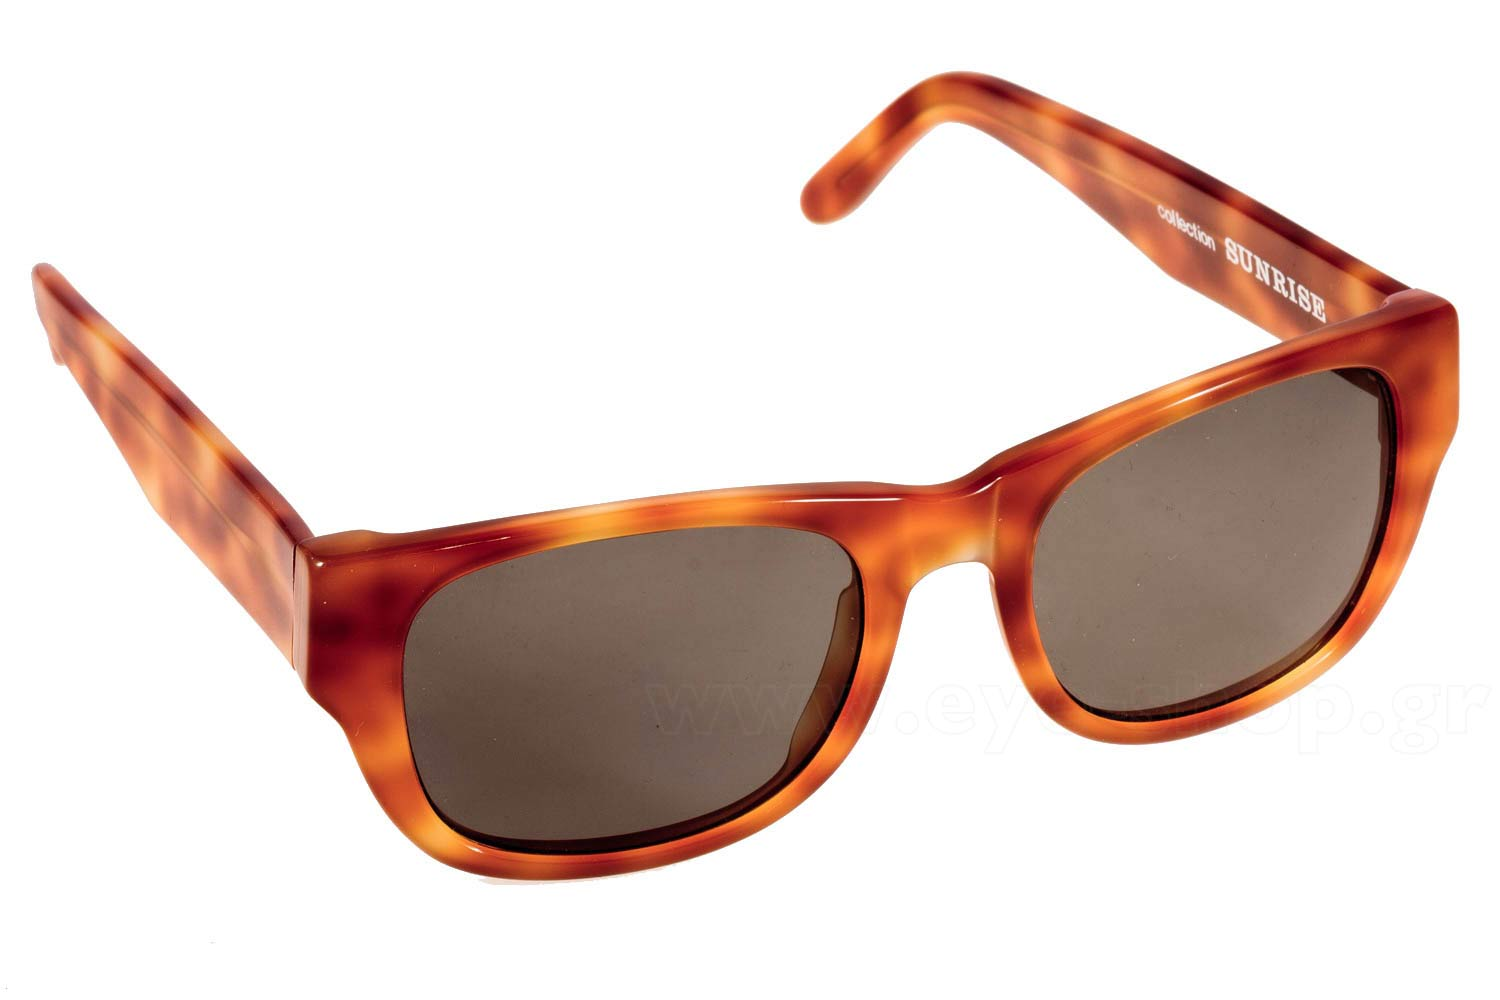 Γυαλιά Bliss 6001 sunrise brown Polarized